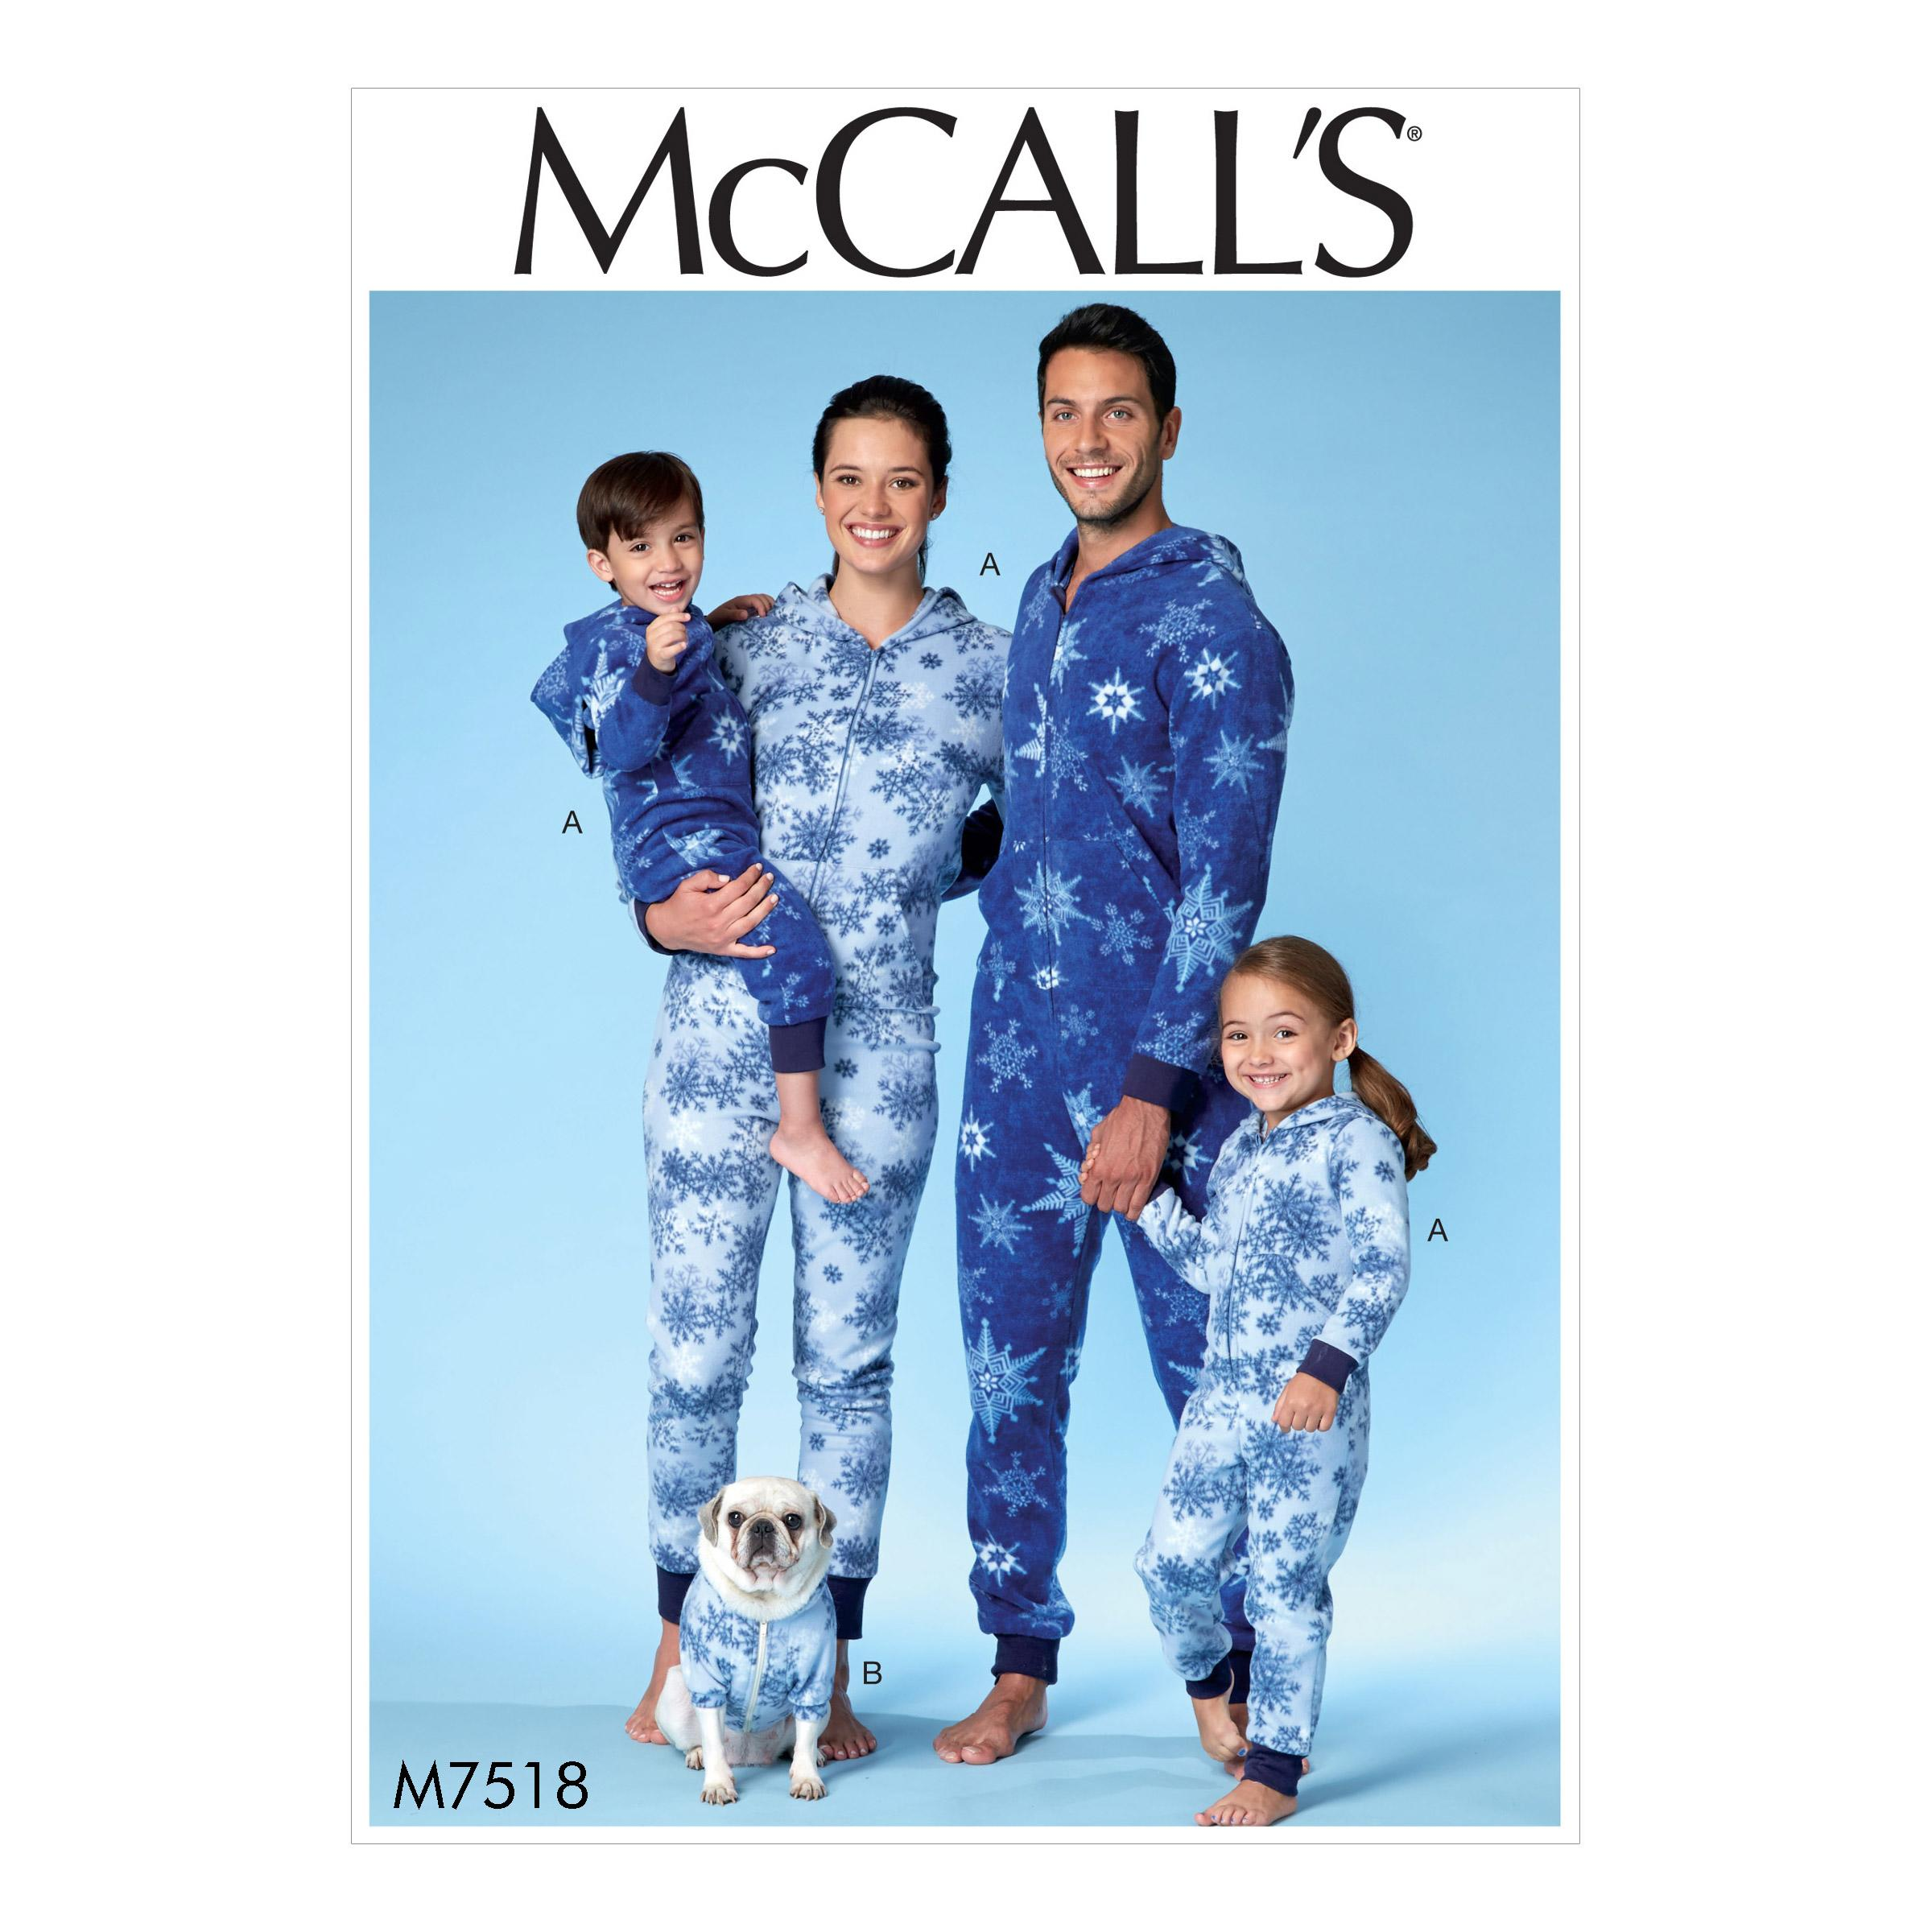 McCalls M7518 Family Sleepwear